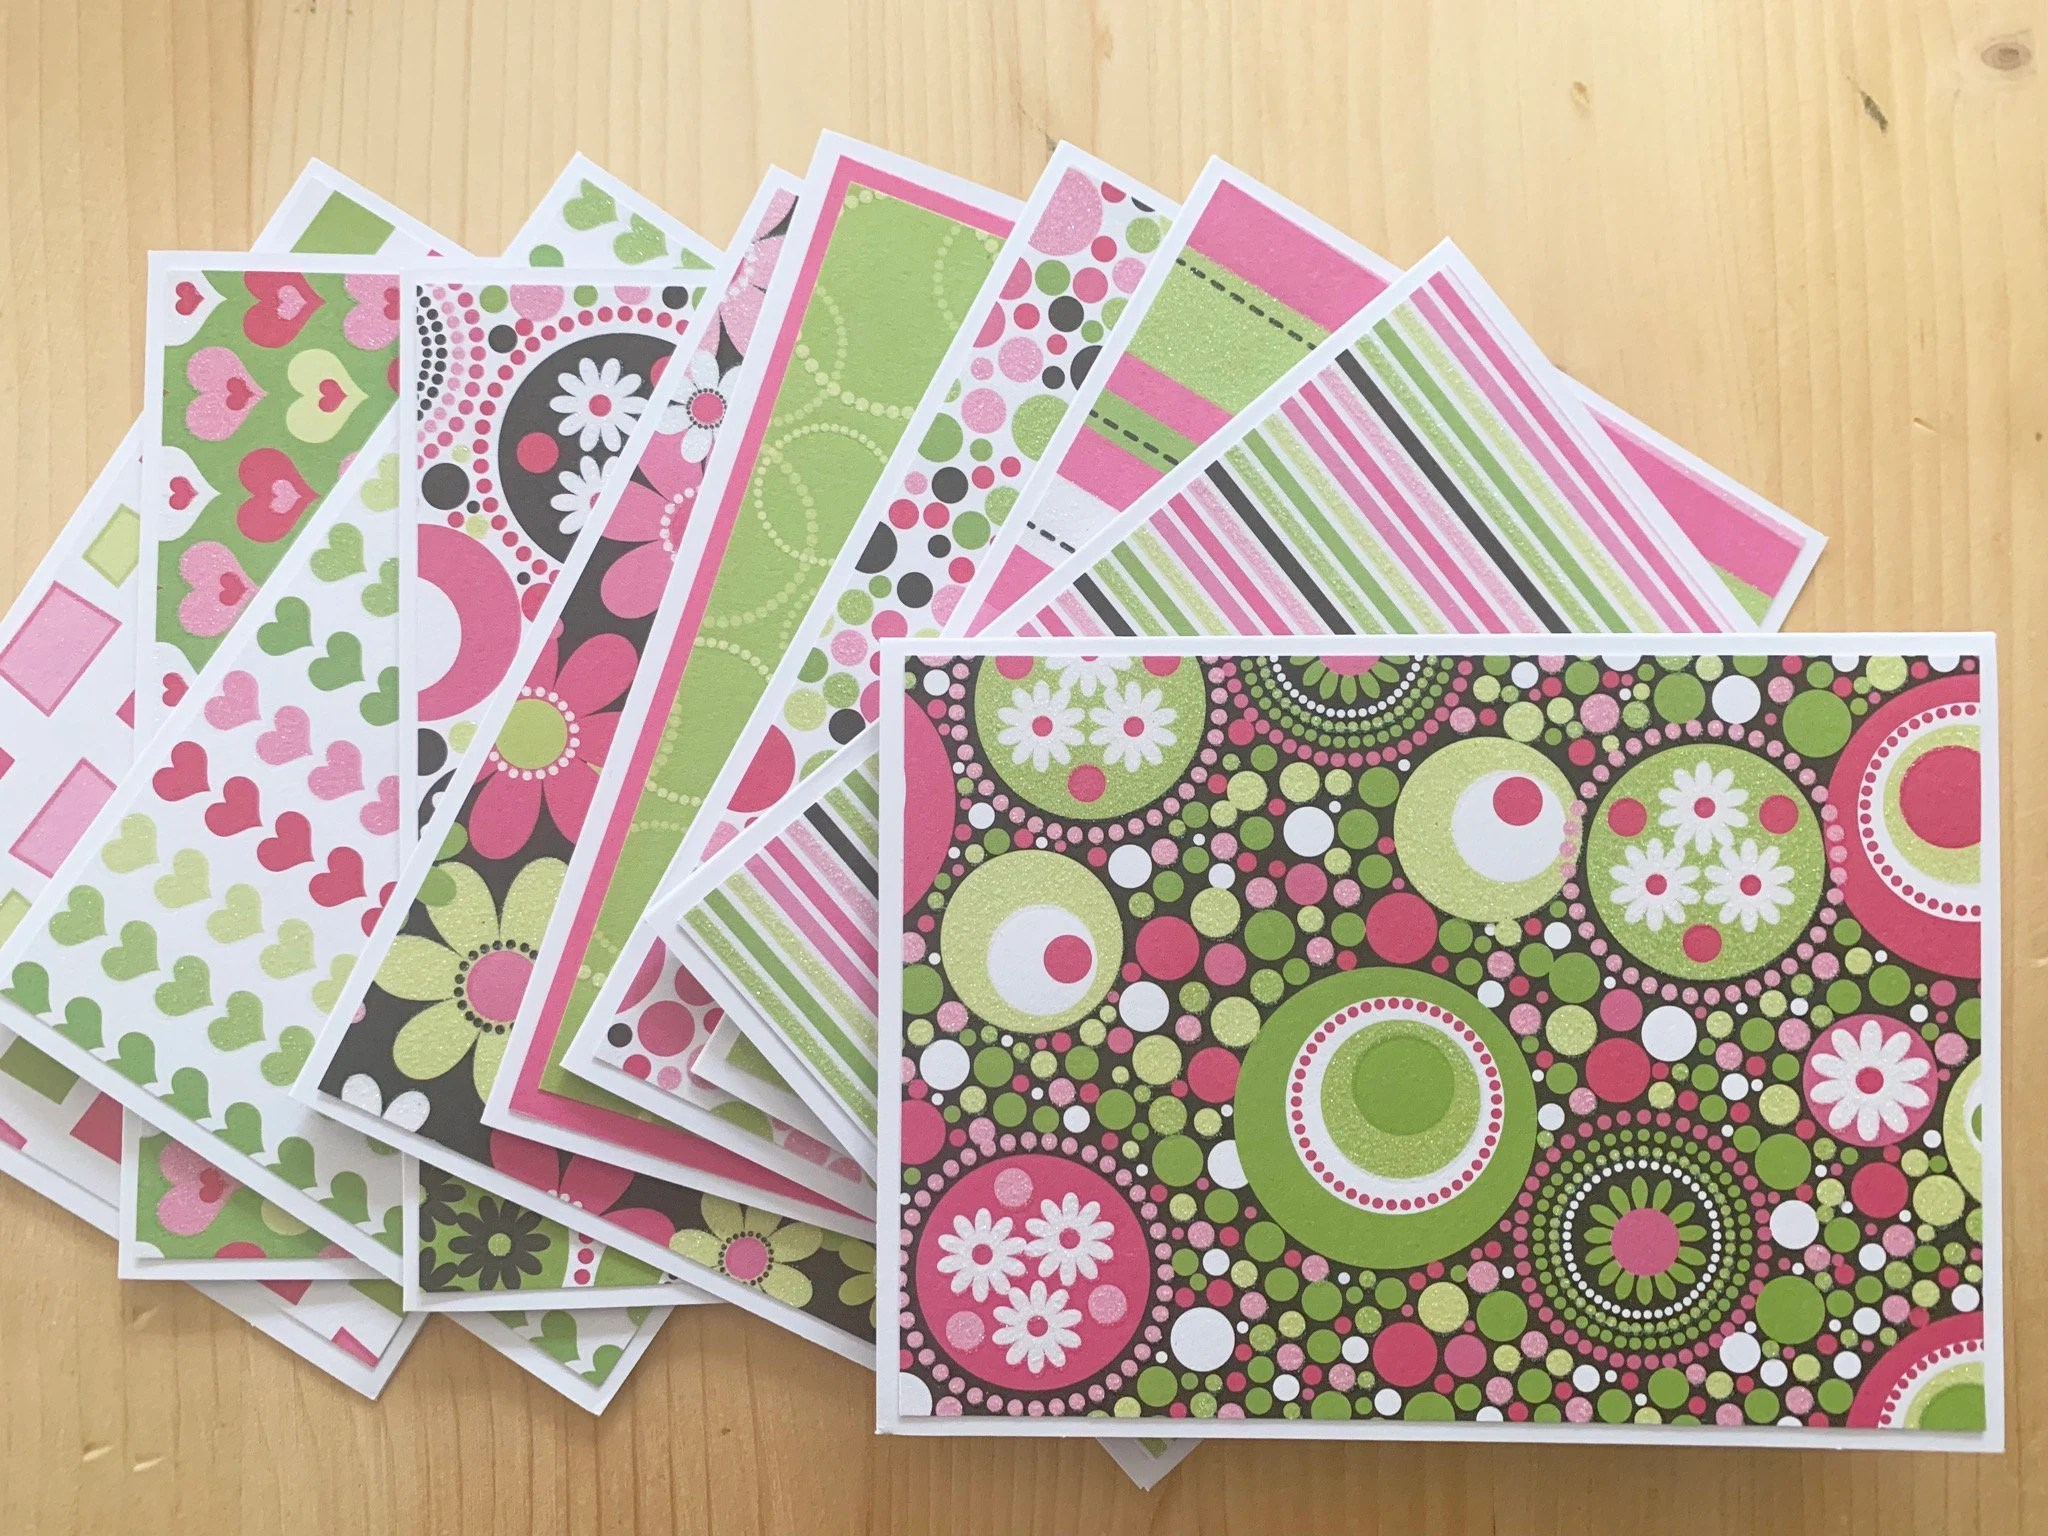 10 Pink Note Cards Blank Note Card Assortment Set featuring Etsy